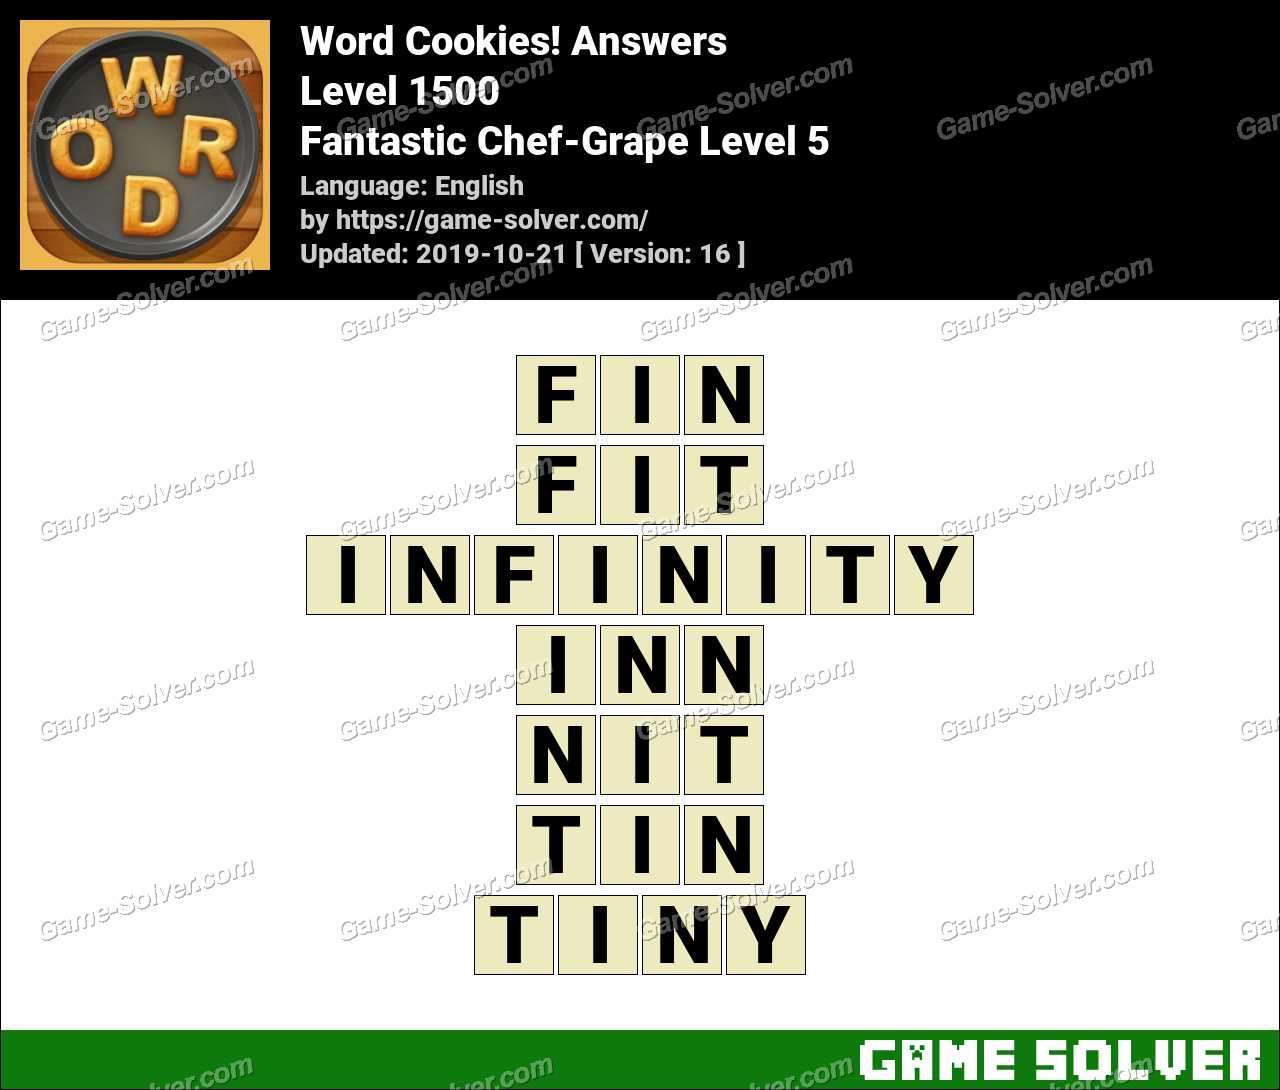 Word Cookies Fantastic Chef-Grape Level 5 Answers